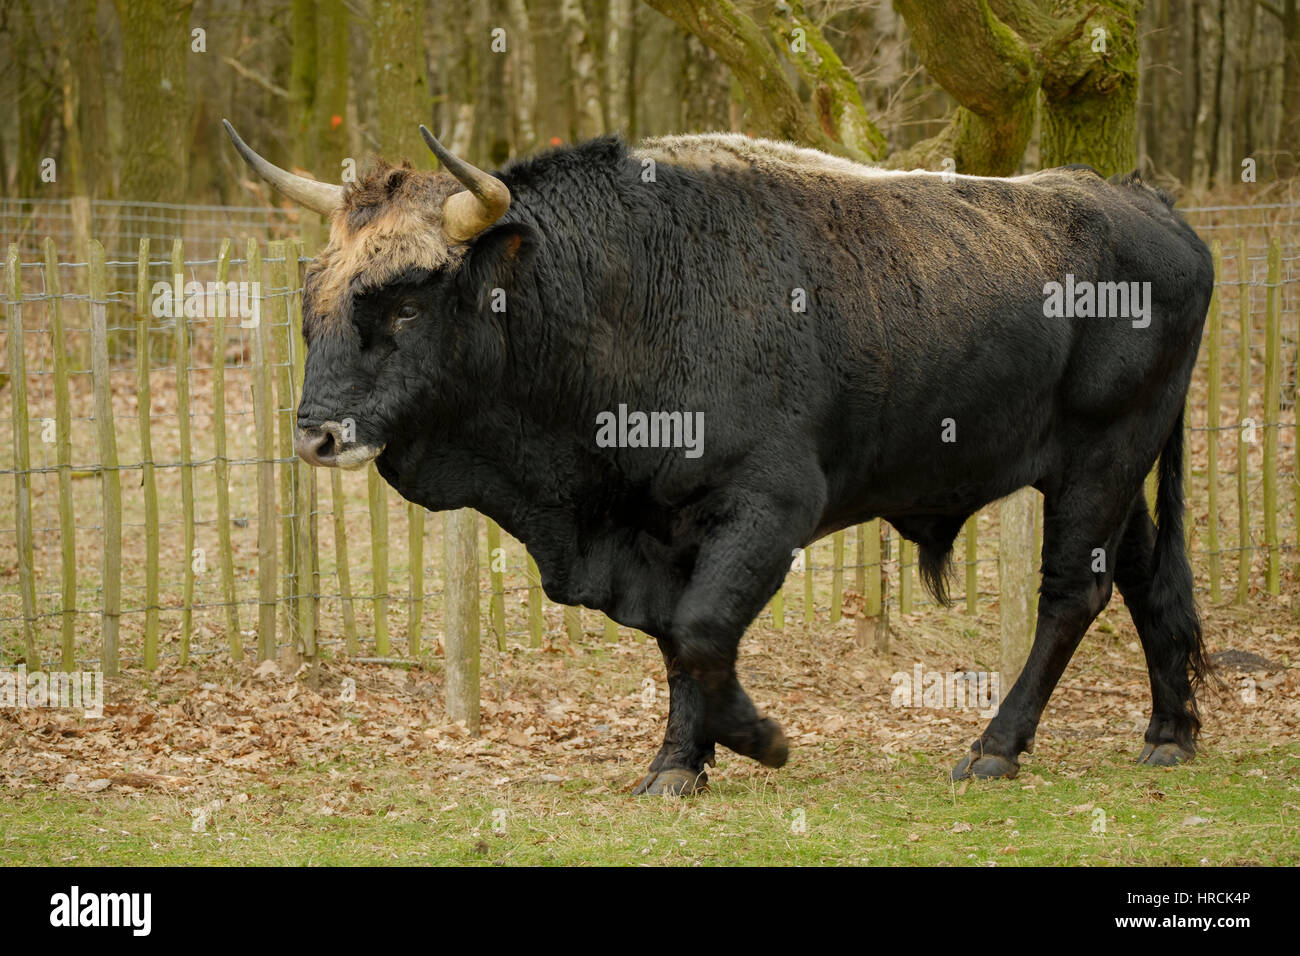 Bull Horns For Sale >> Aurochs animal Bos primigenius with large horns Stock Photo: 134888118 - Alamy